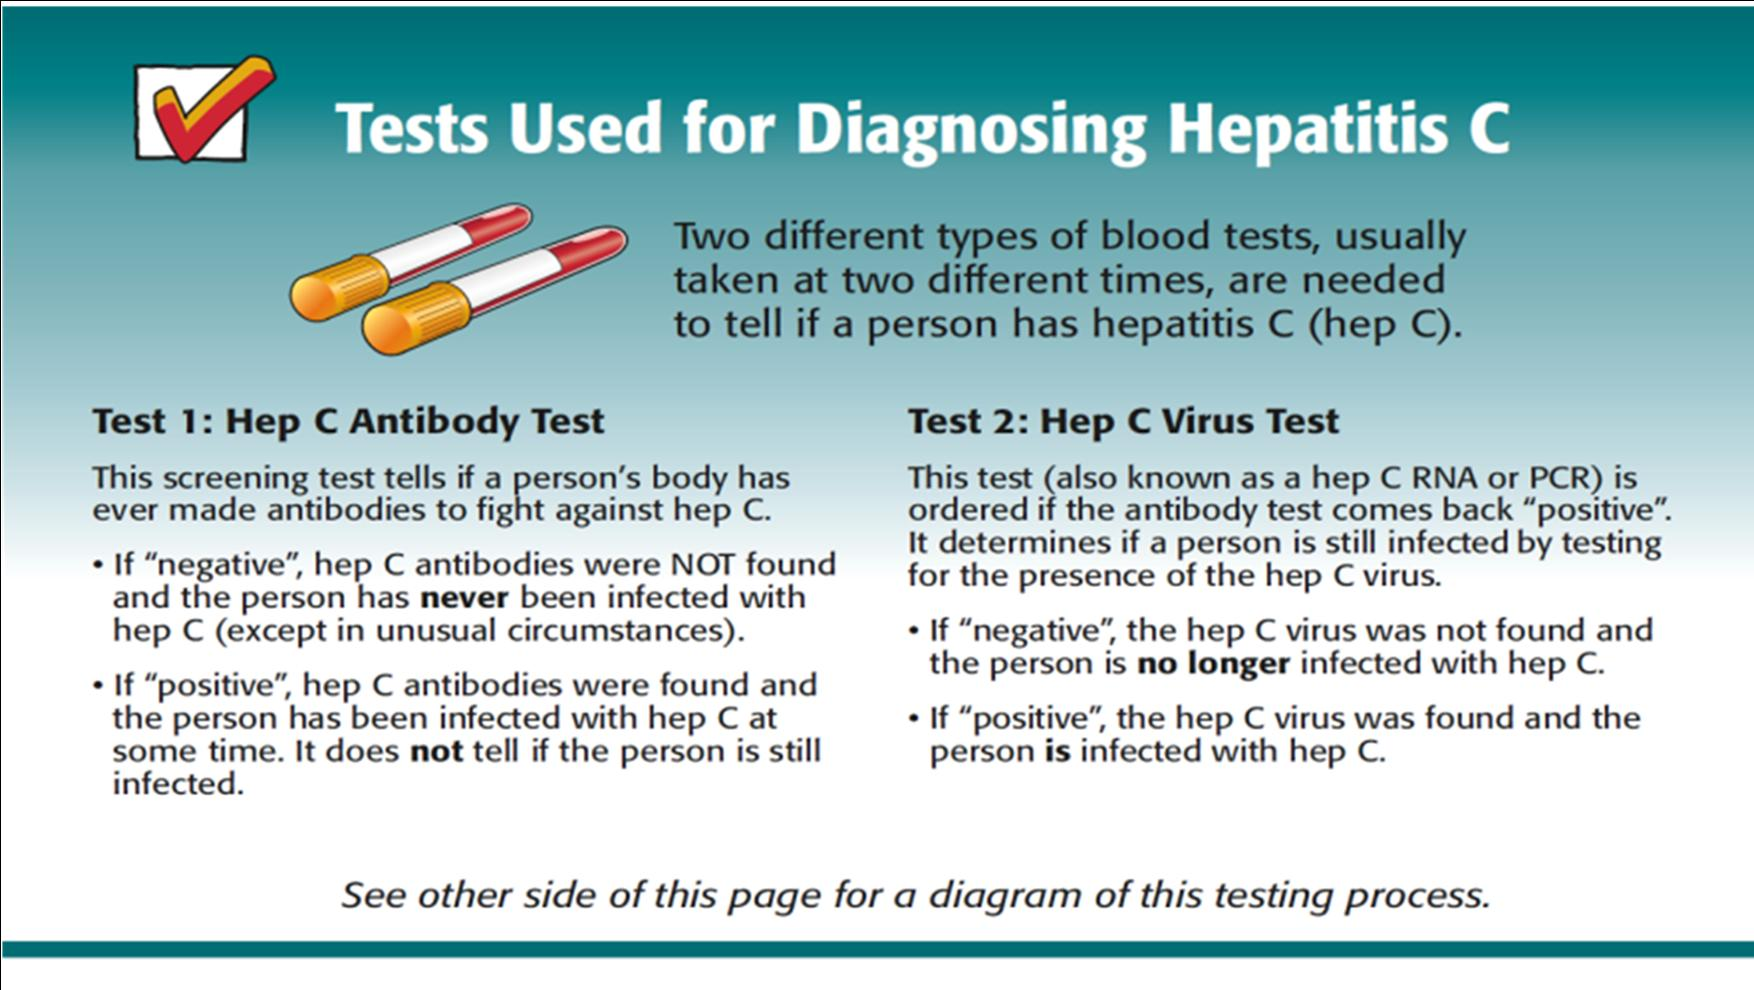 Tests Used to Diagnose Hepatitis C